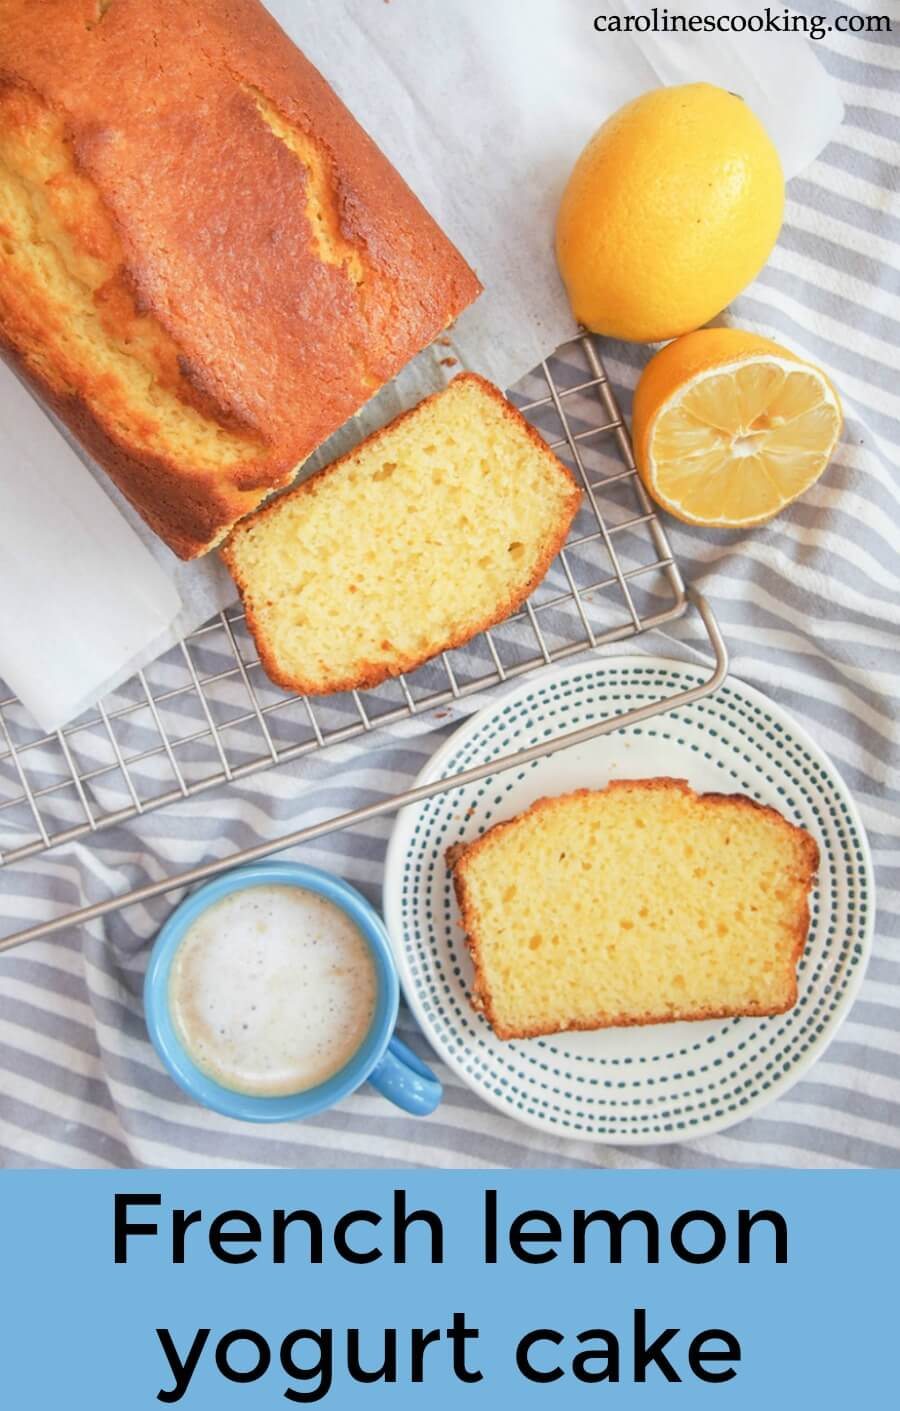 This French lemon yogurt cake is so easy to make and the result is one incredibly delicious, moist, light and flavorful loaf that works for so many occasions. It's no wonder this is on every French cook's list. #yogurtcake #lemonyogurtcake #frenchyogurtcake #easybaking